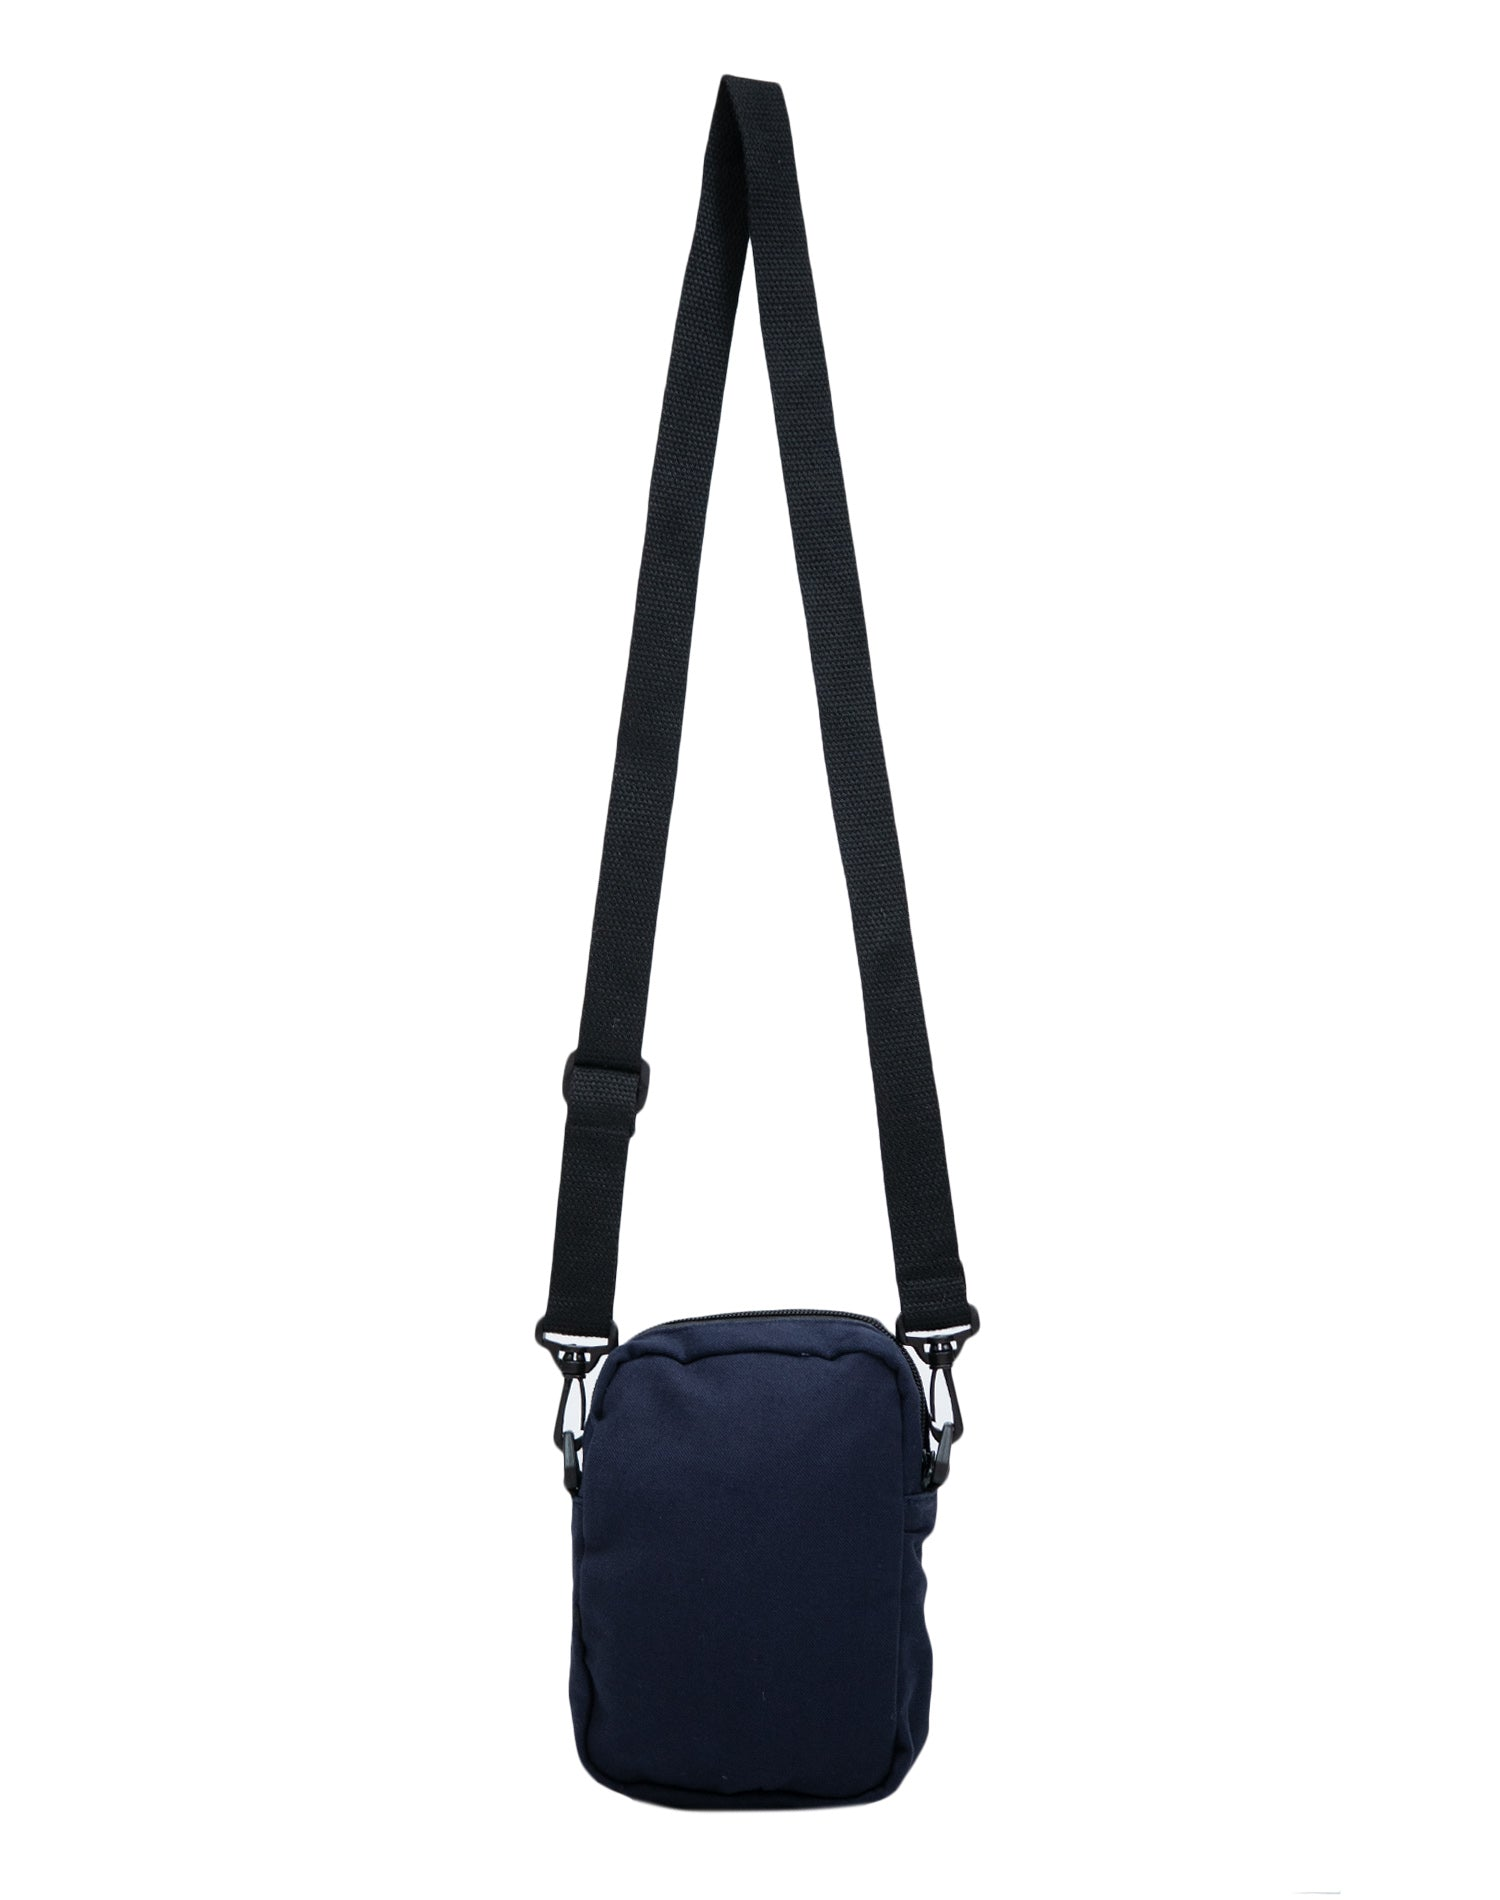 Deep Blue Sunny Canvas Mini Square Shoulder Bag.藍色帆布迷你方形單肩斜挎袋